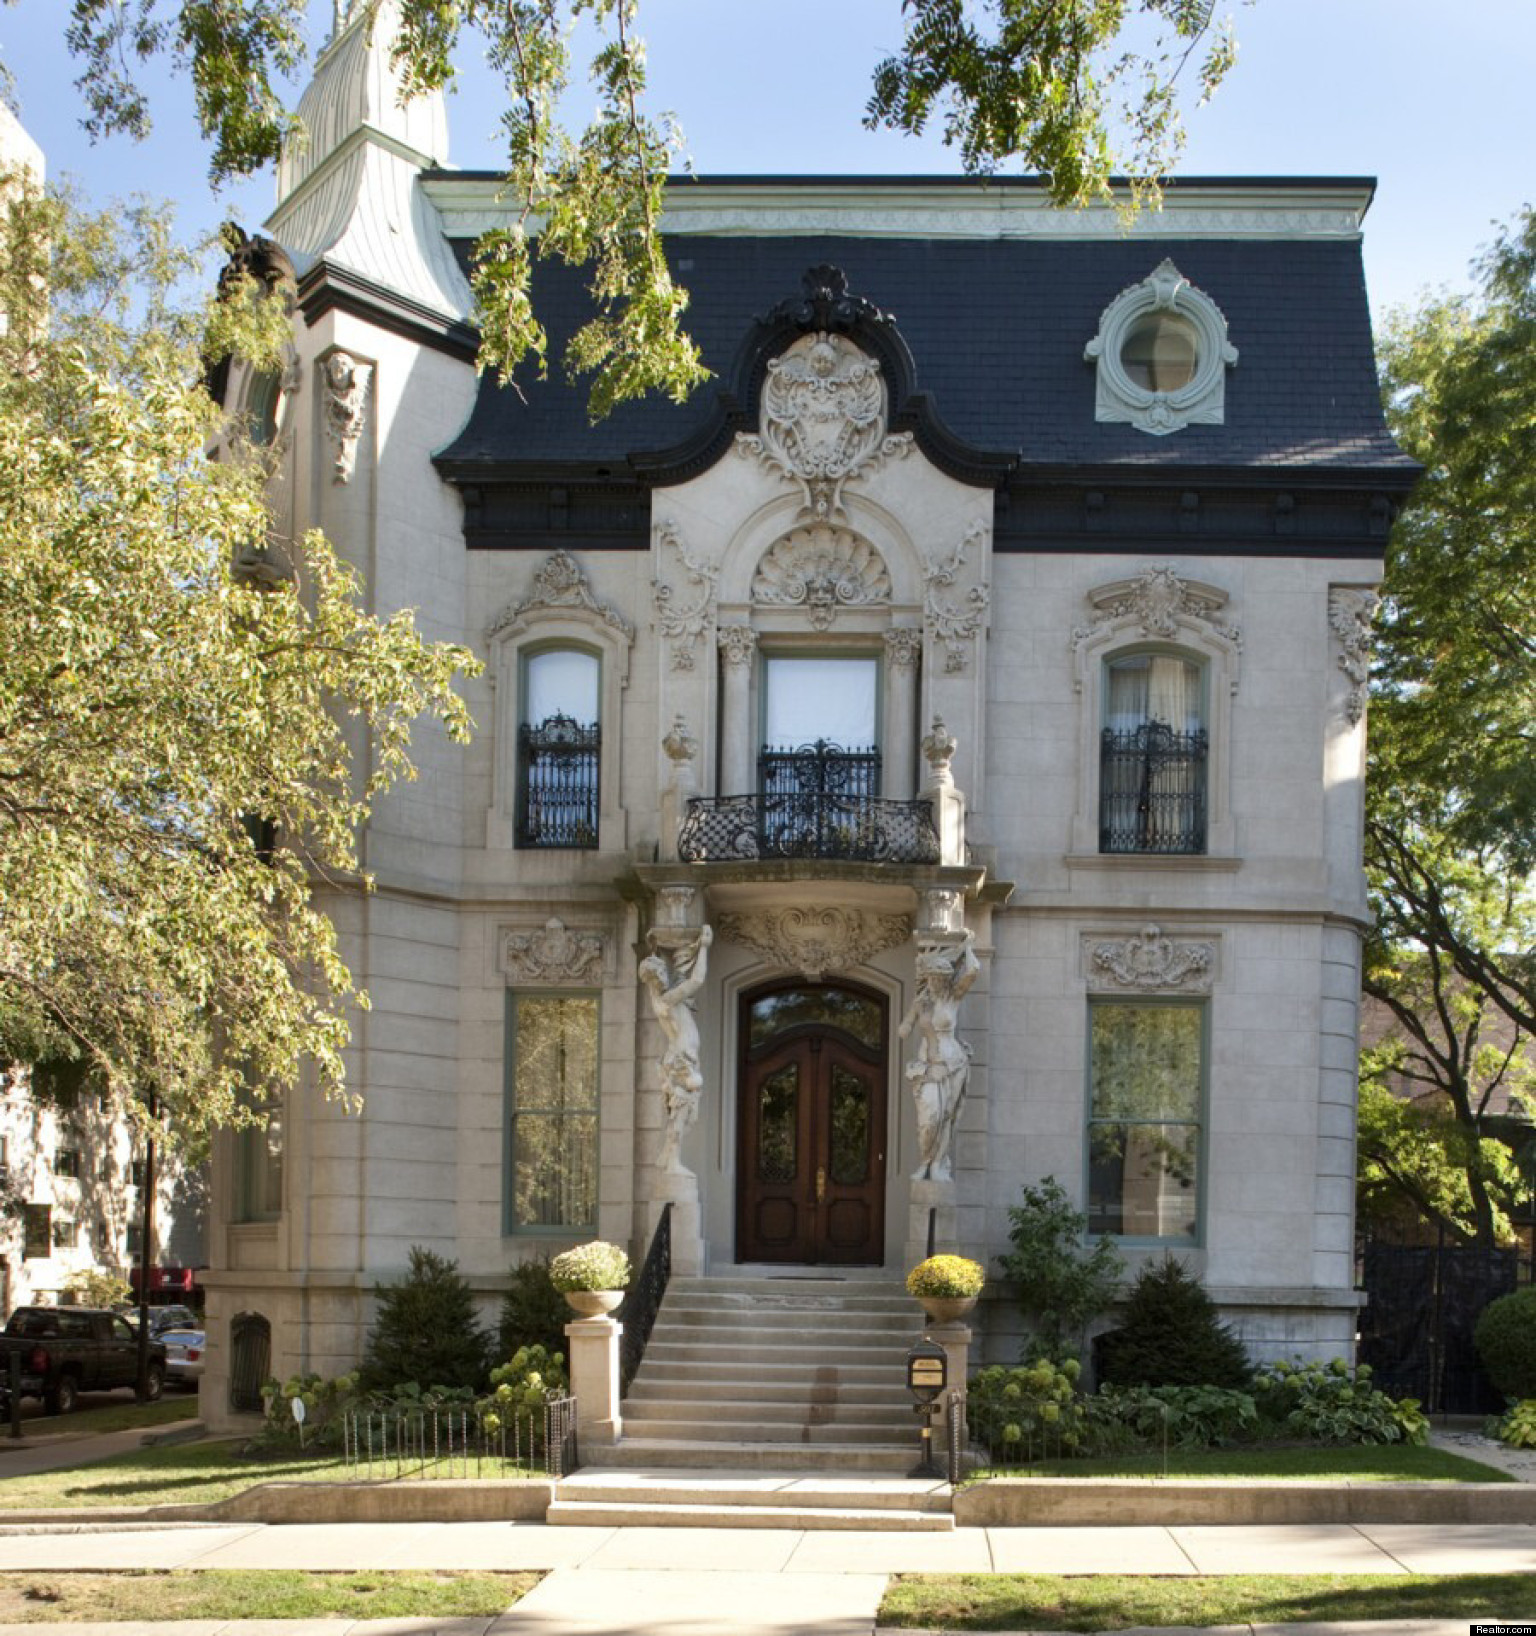 Most Expensive Real Estate  Chicago 2012 Listings That Broke The Bank   PHOTOS    HuffPost. Most Expensive Real Estate  Chicago 2012 Listings That Broke The